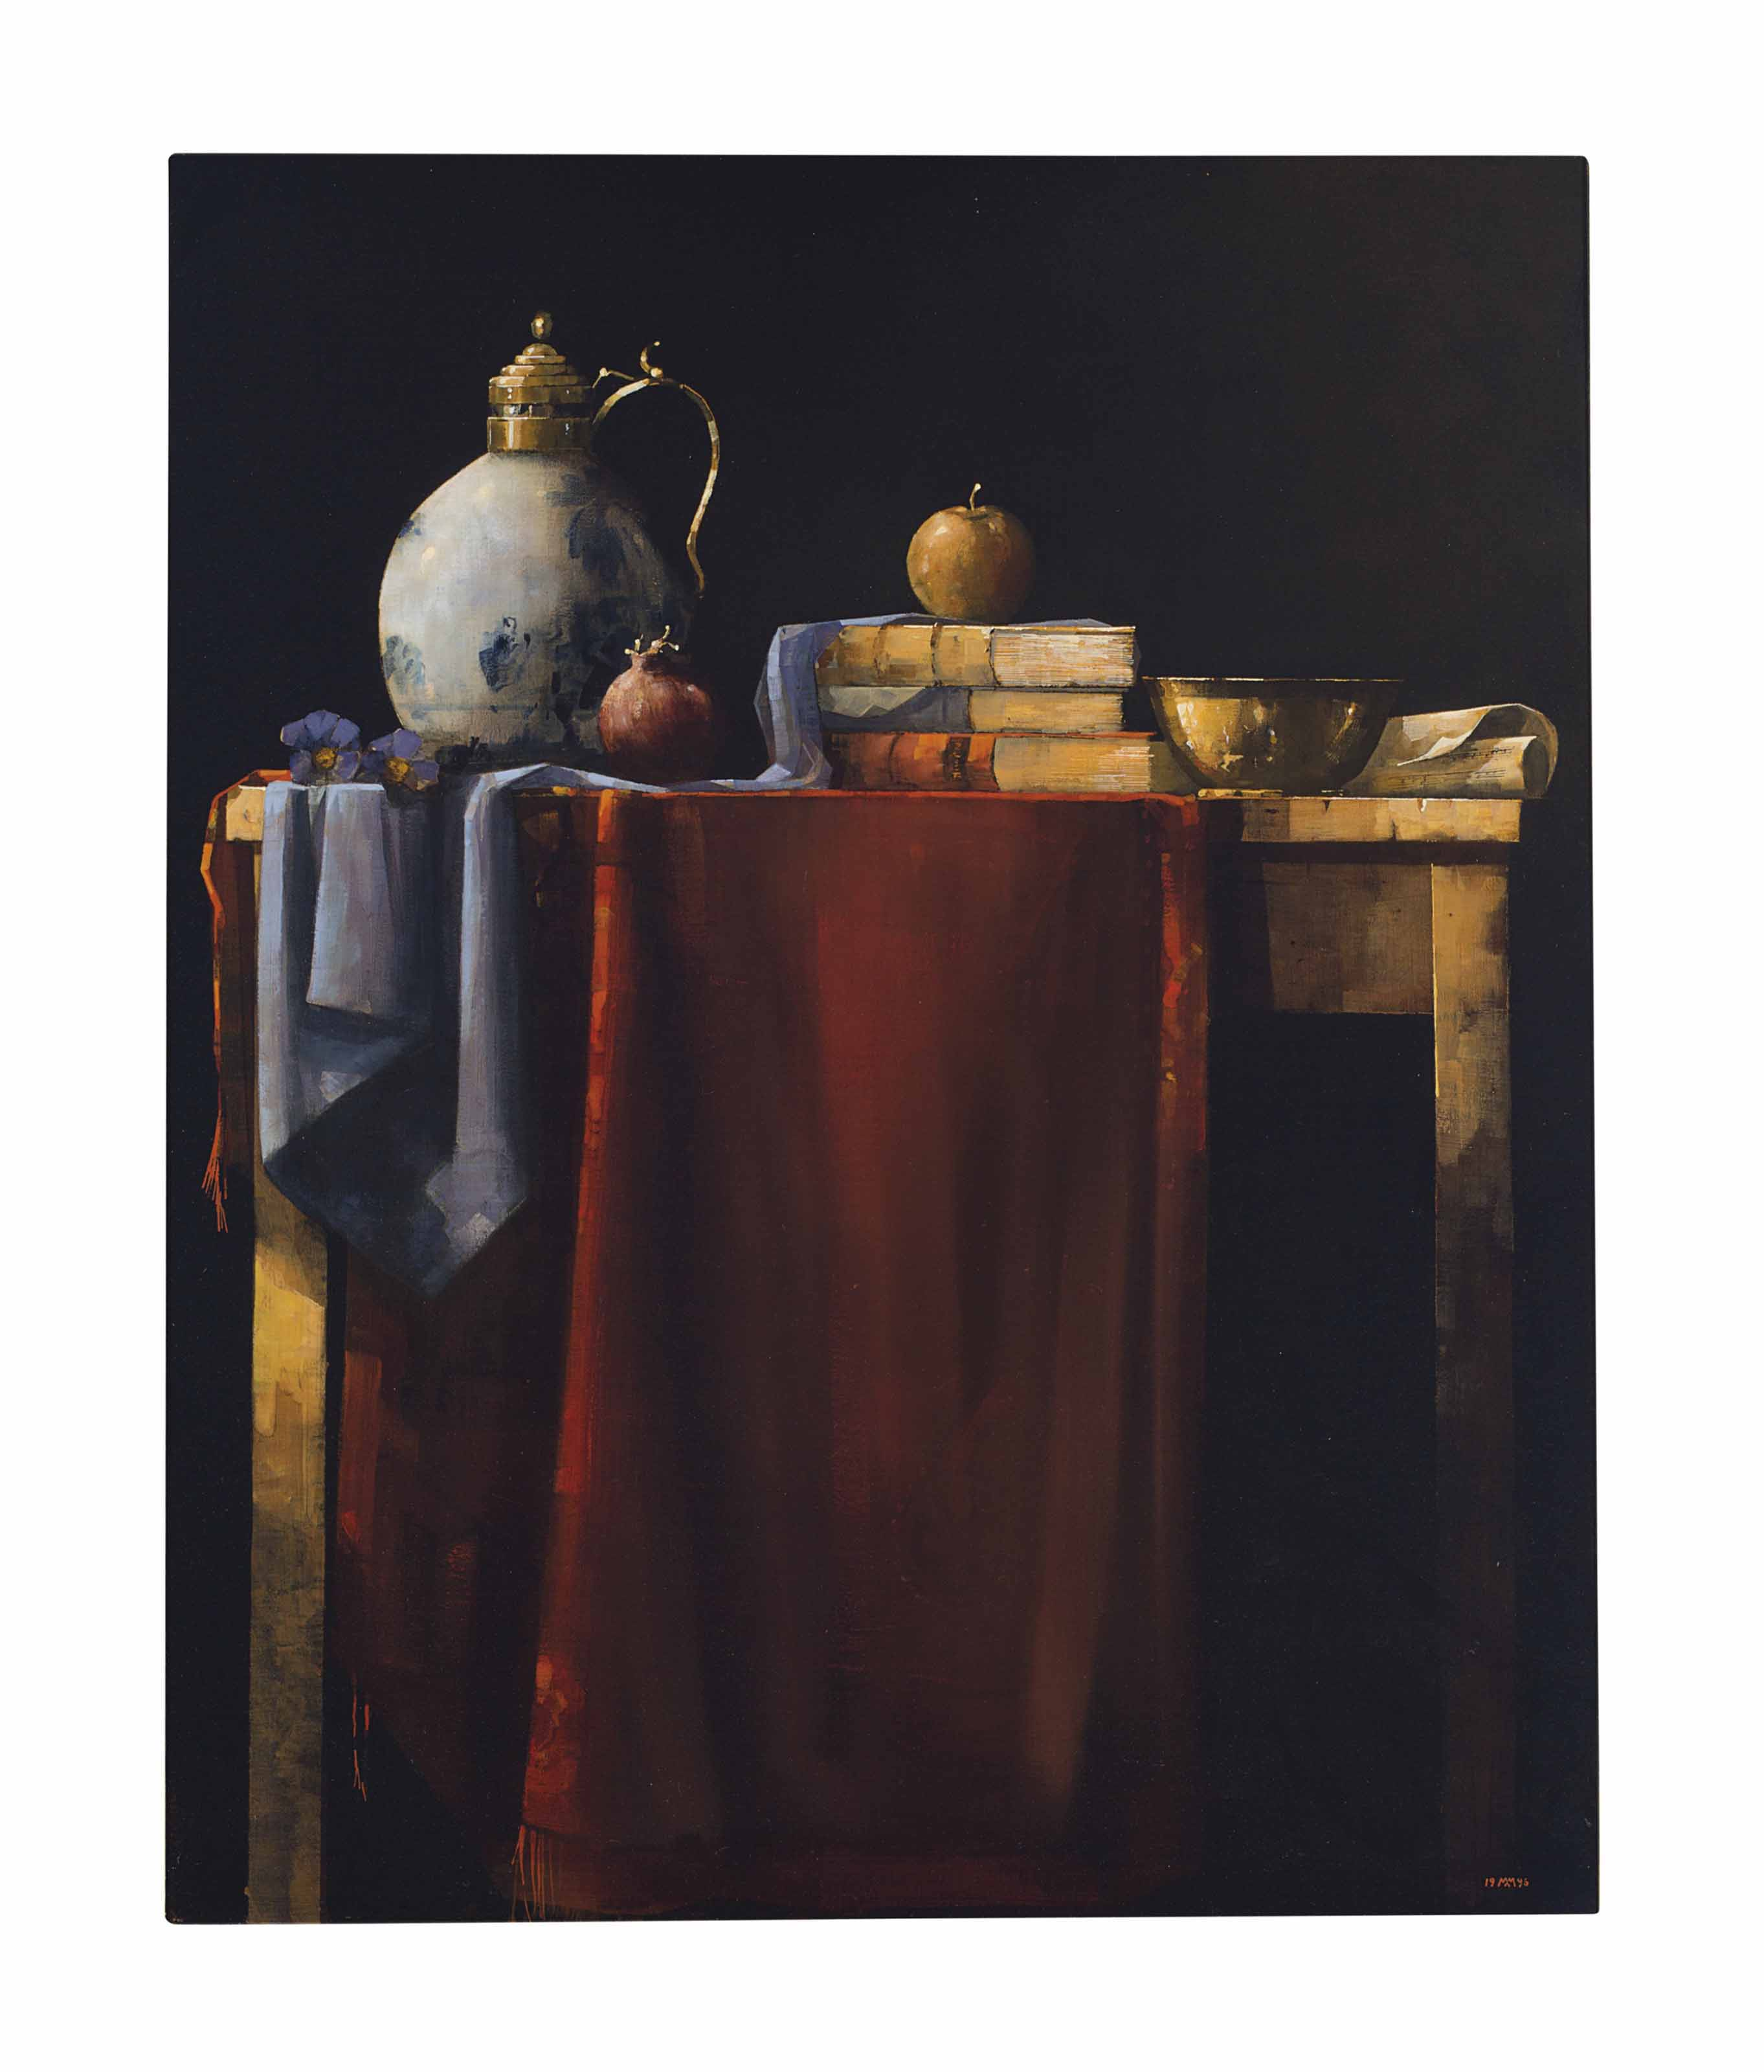 Still life with books and draped cloth on a table